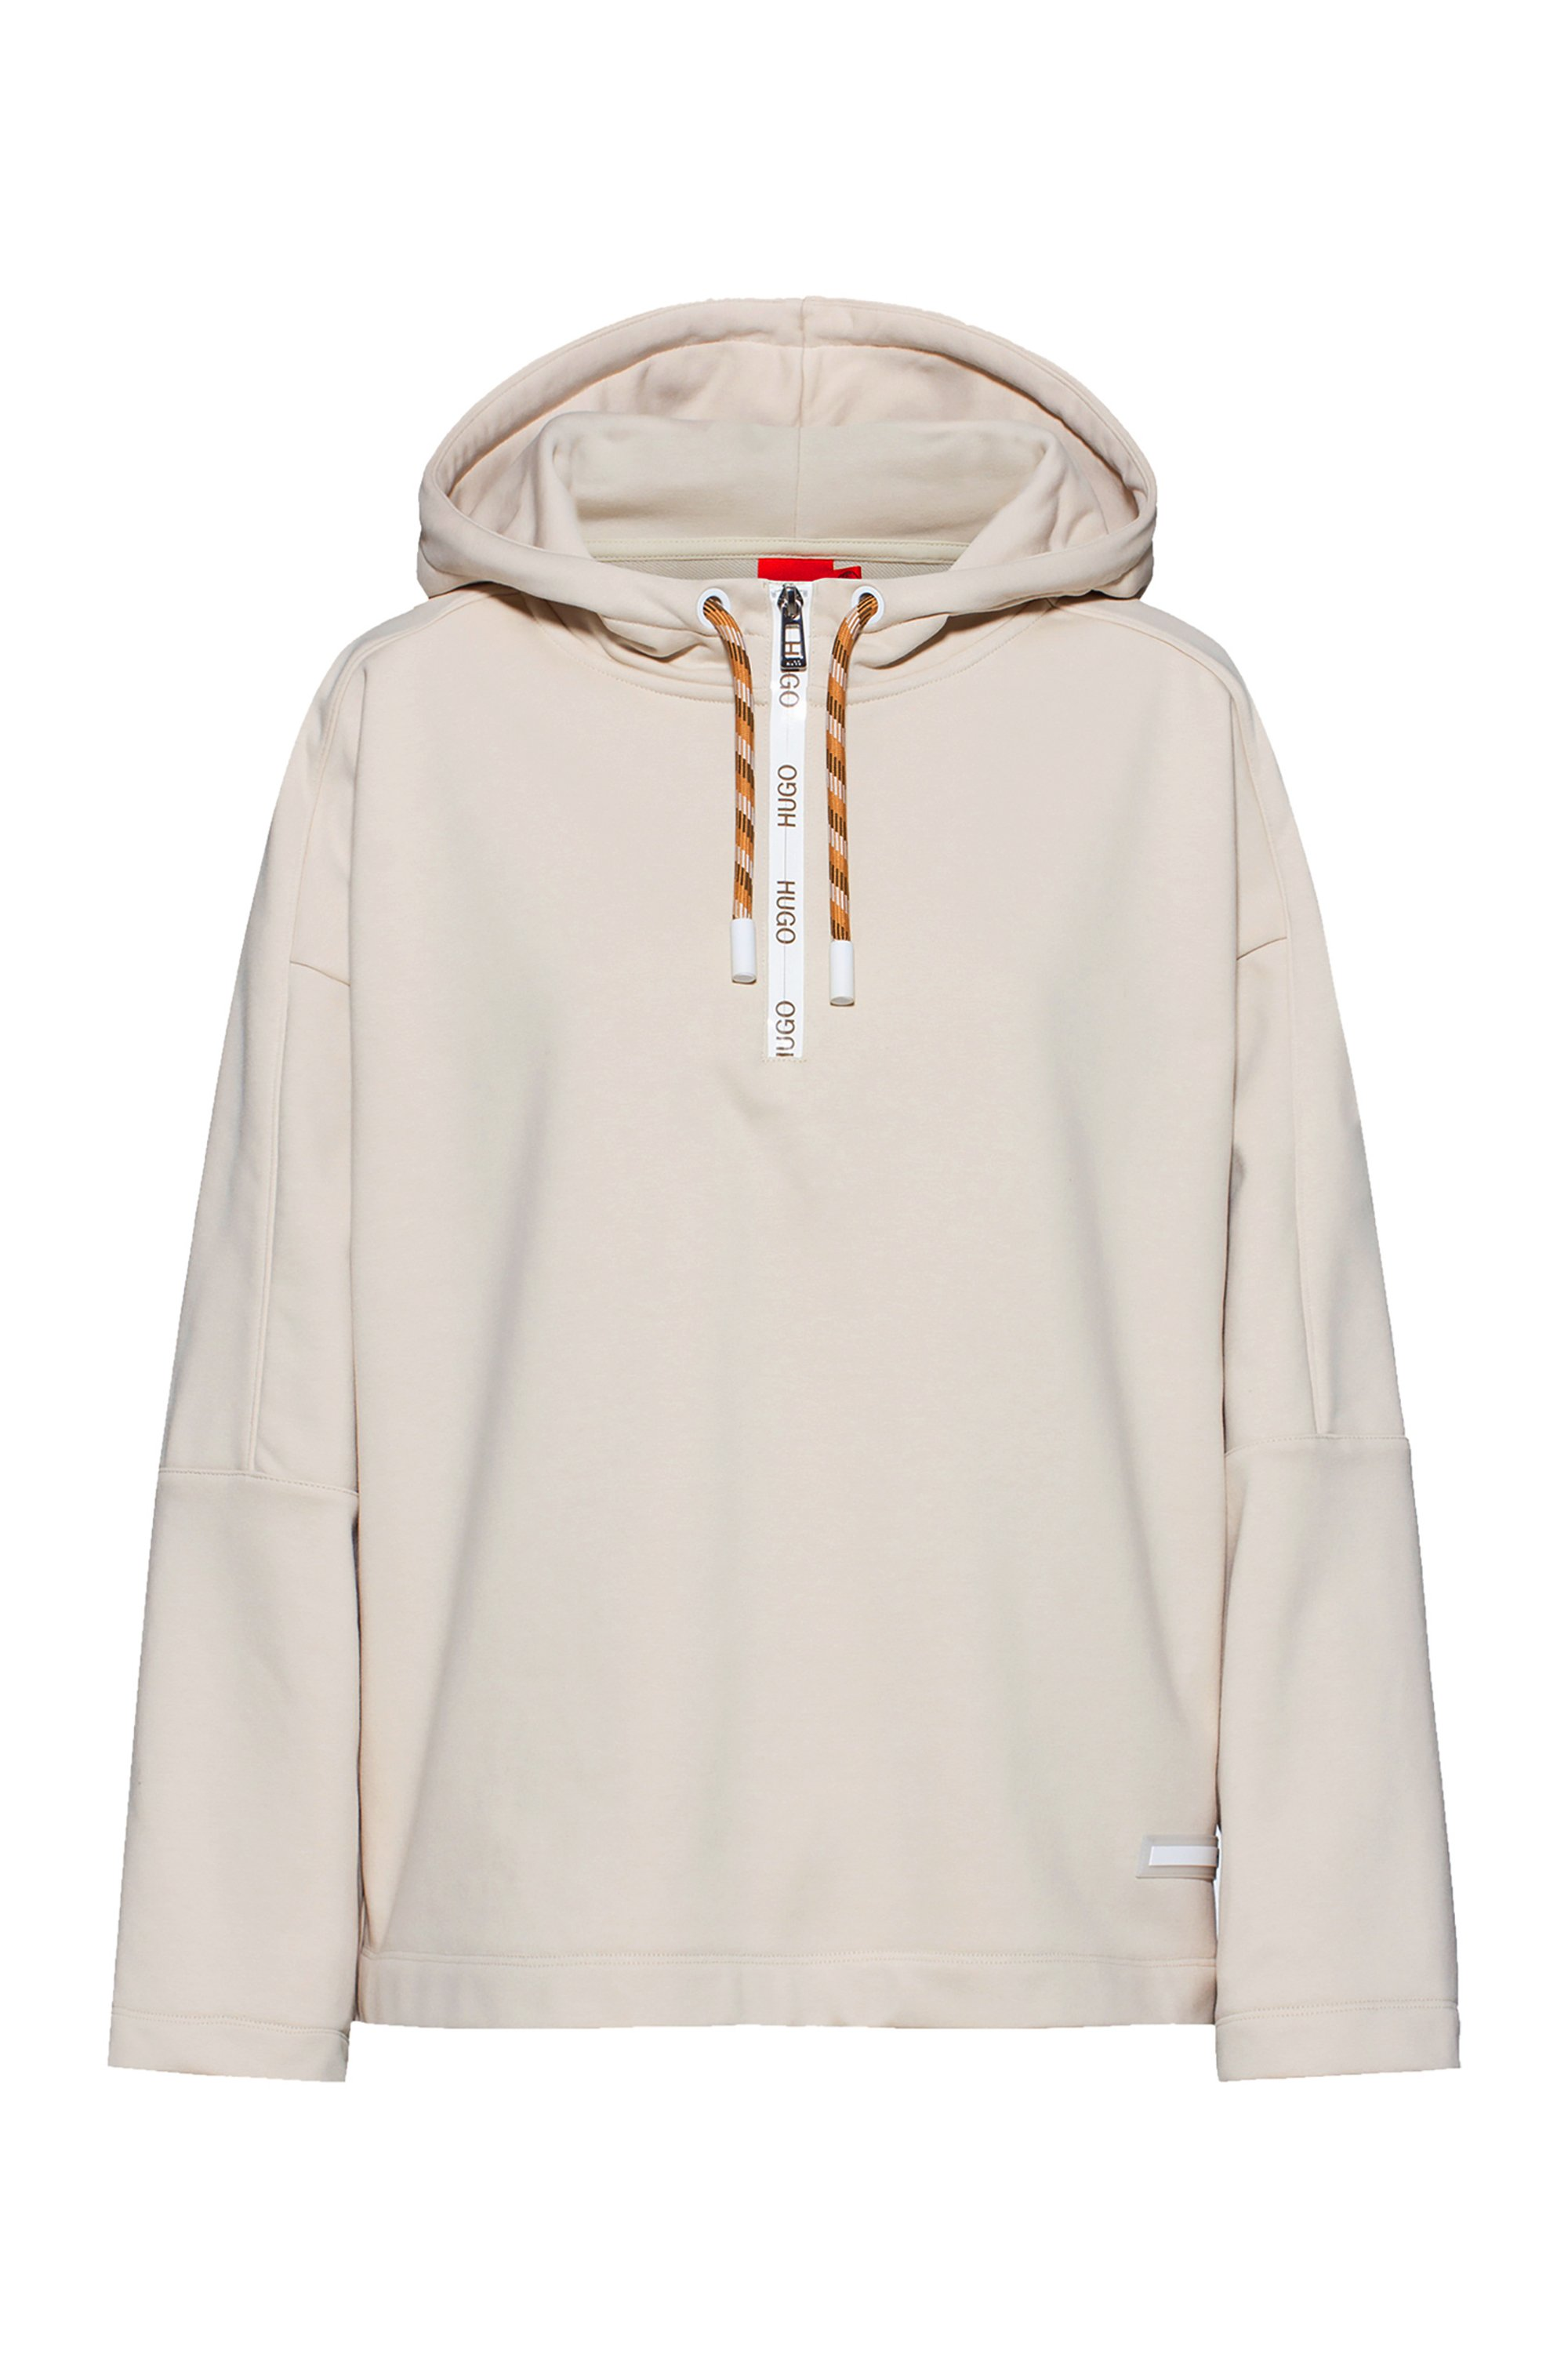 Relaxed-fit hooded sweatshirt with logo detailing, White